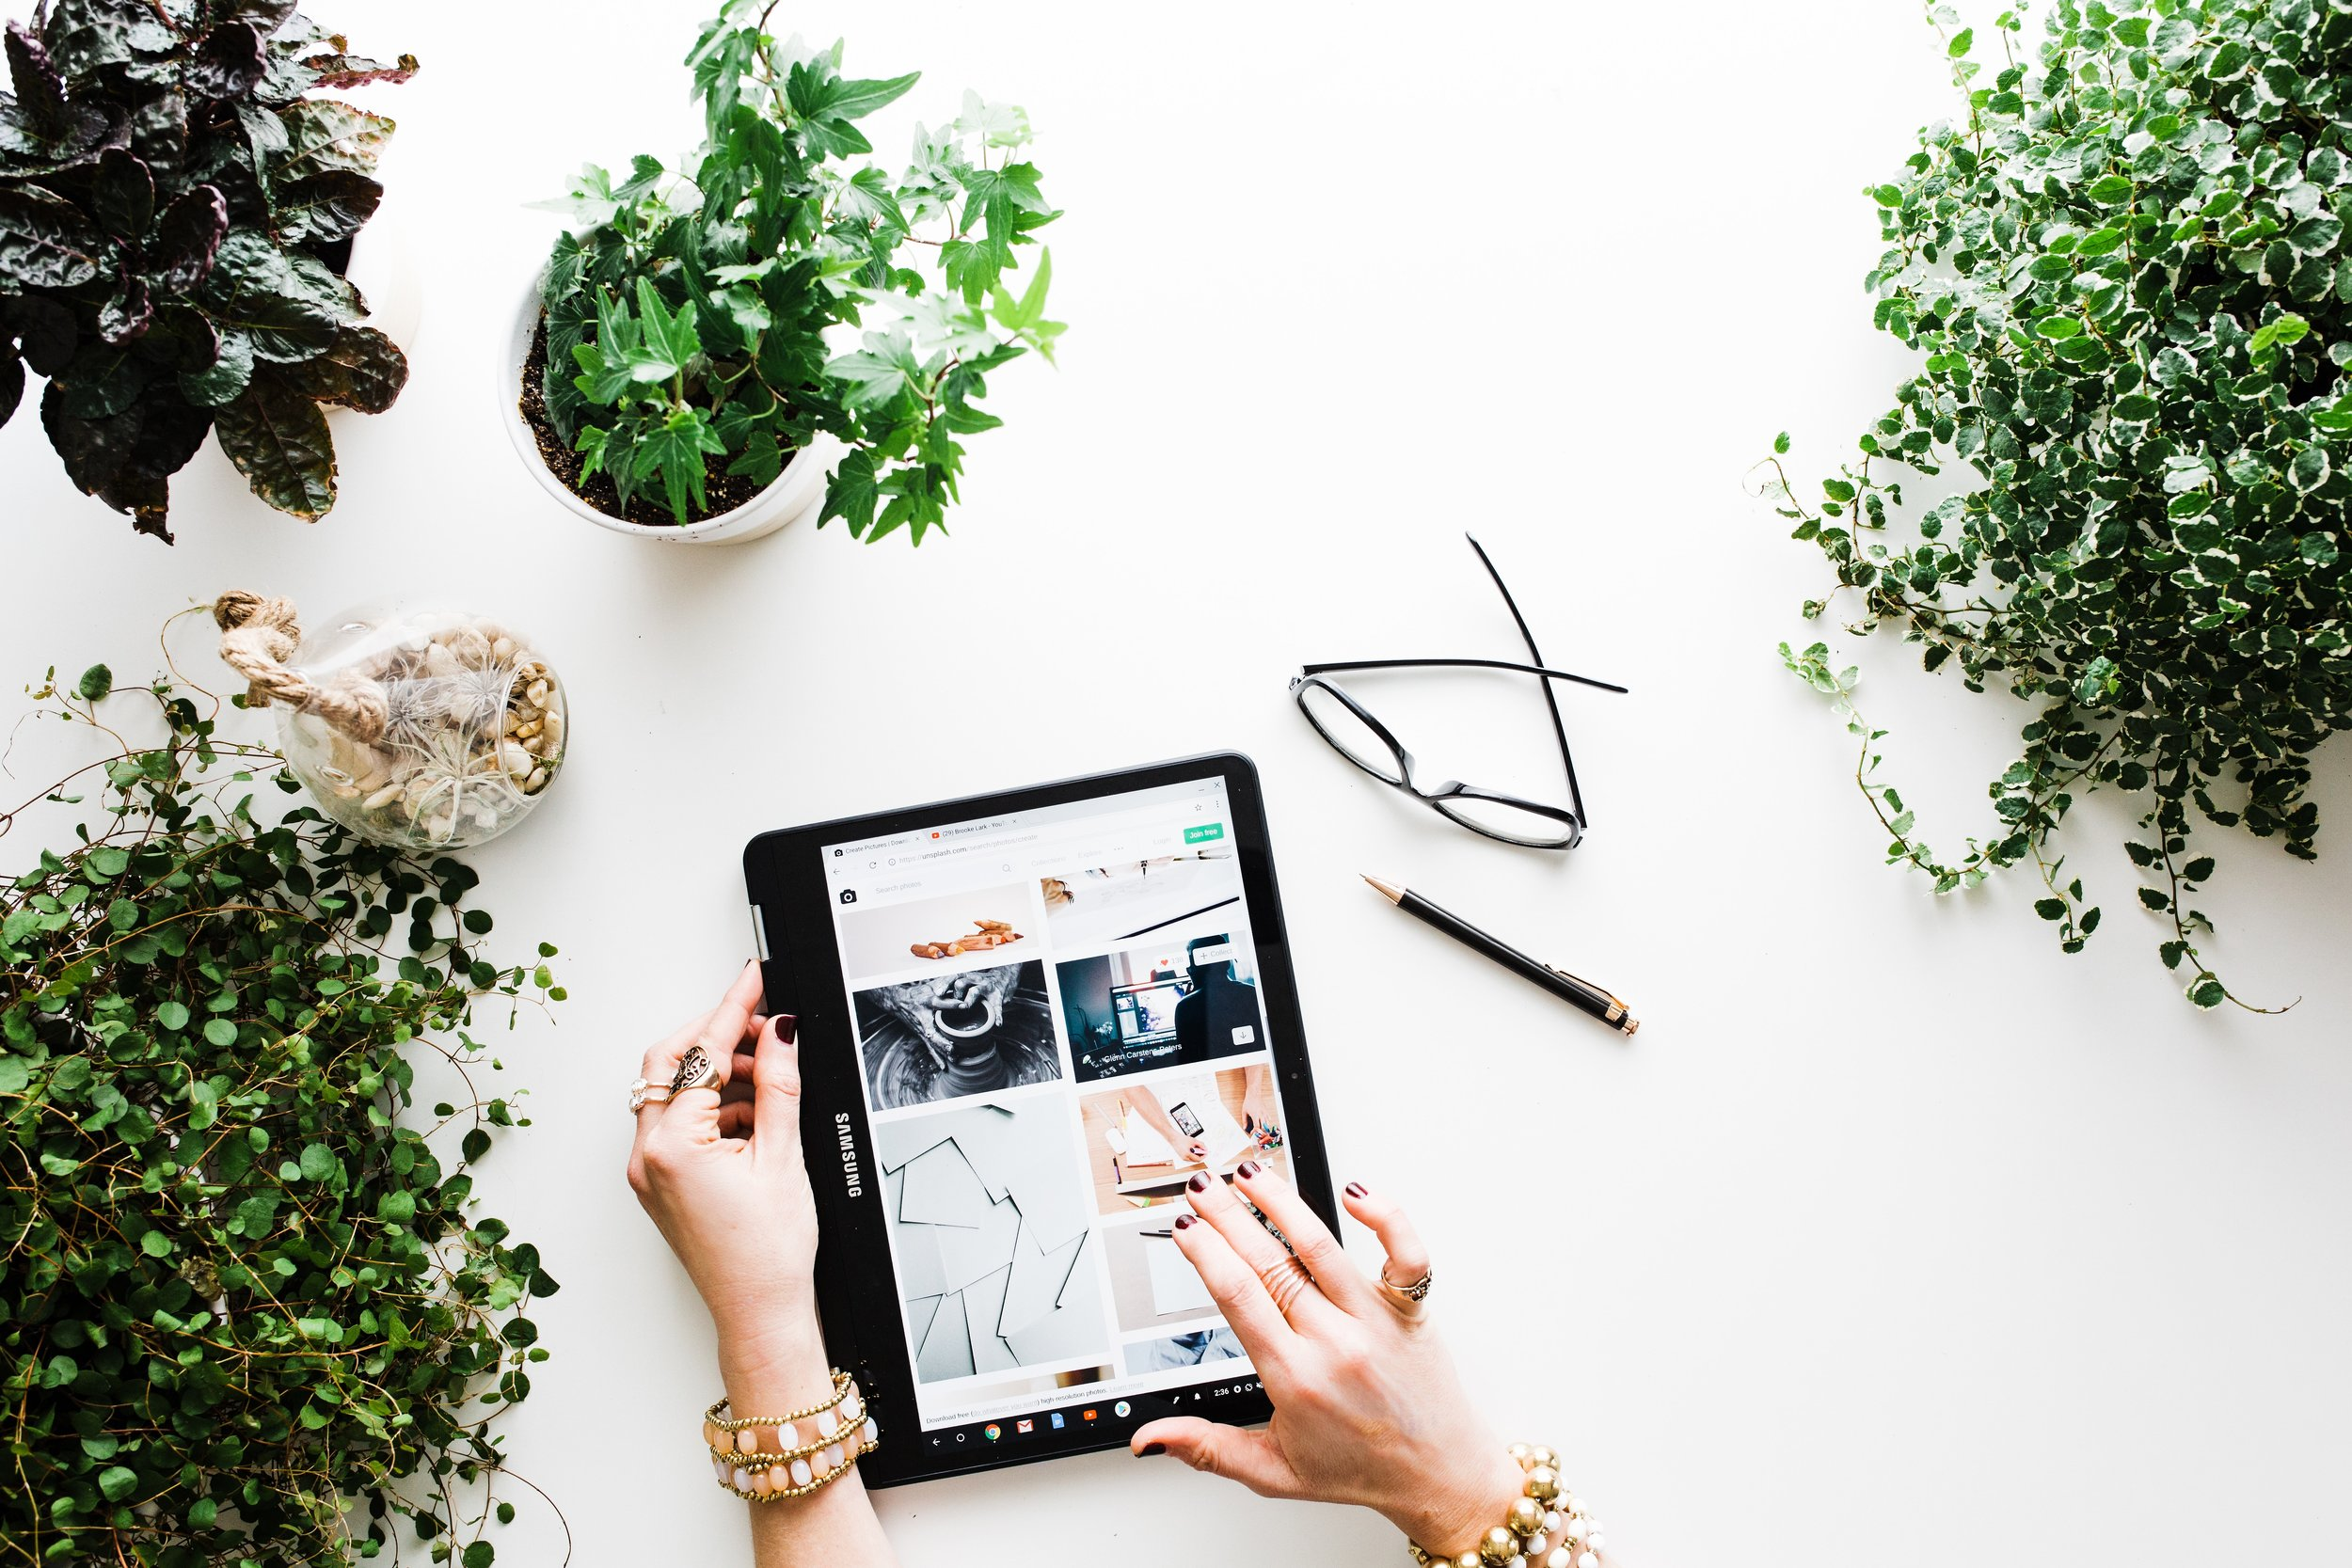 Online Stores You Should Be Using To Save Money